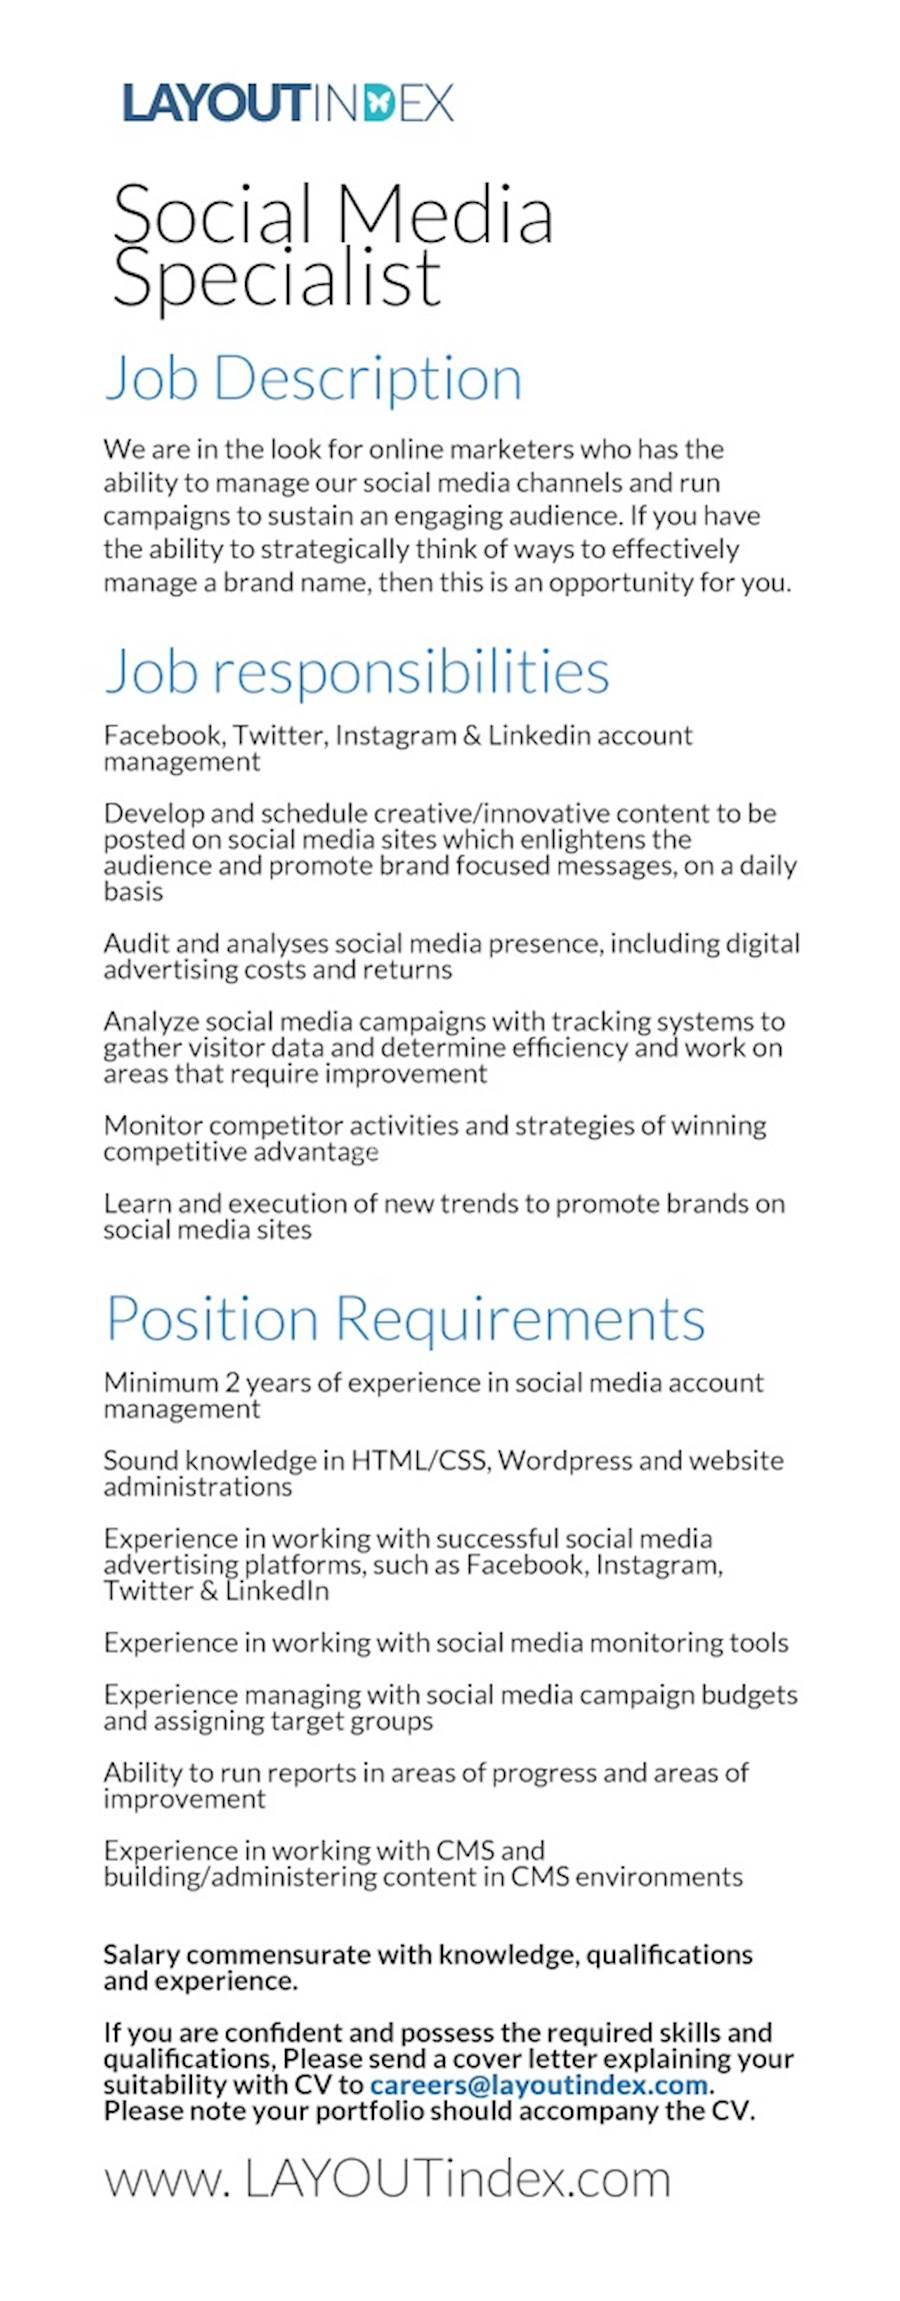 SOCIAL MEDIA SPECIALIST at LAYOUTINDEX at Layout Index